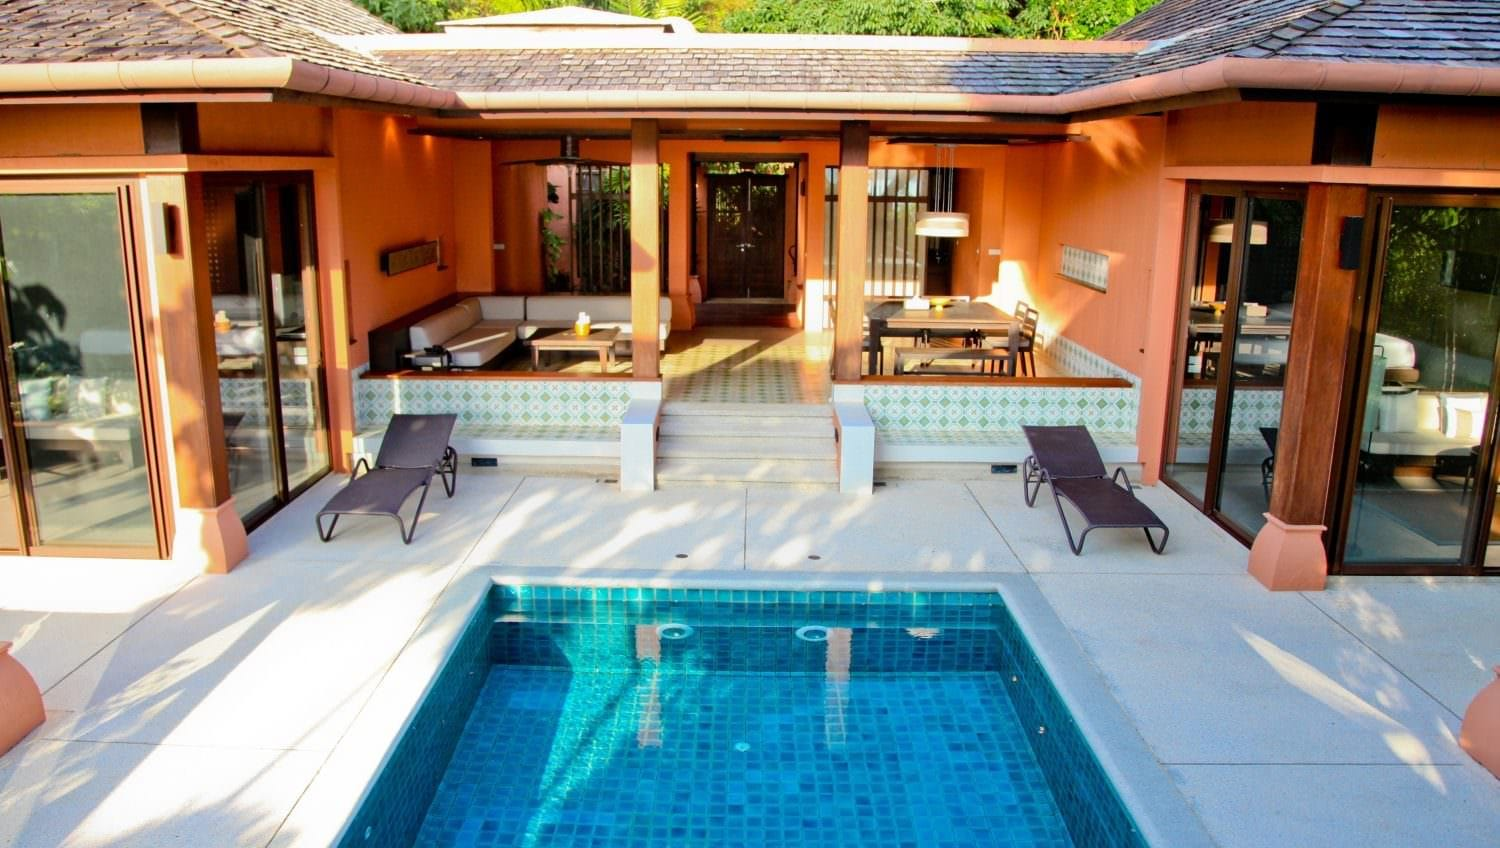 3-Two-Bedroom-Family-Suite-Garden-View-Sri-Panwa-Luxury-Pool-Villa-Hotel-Phuket-Resort-Spa